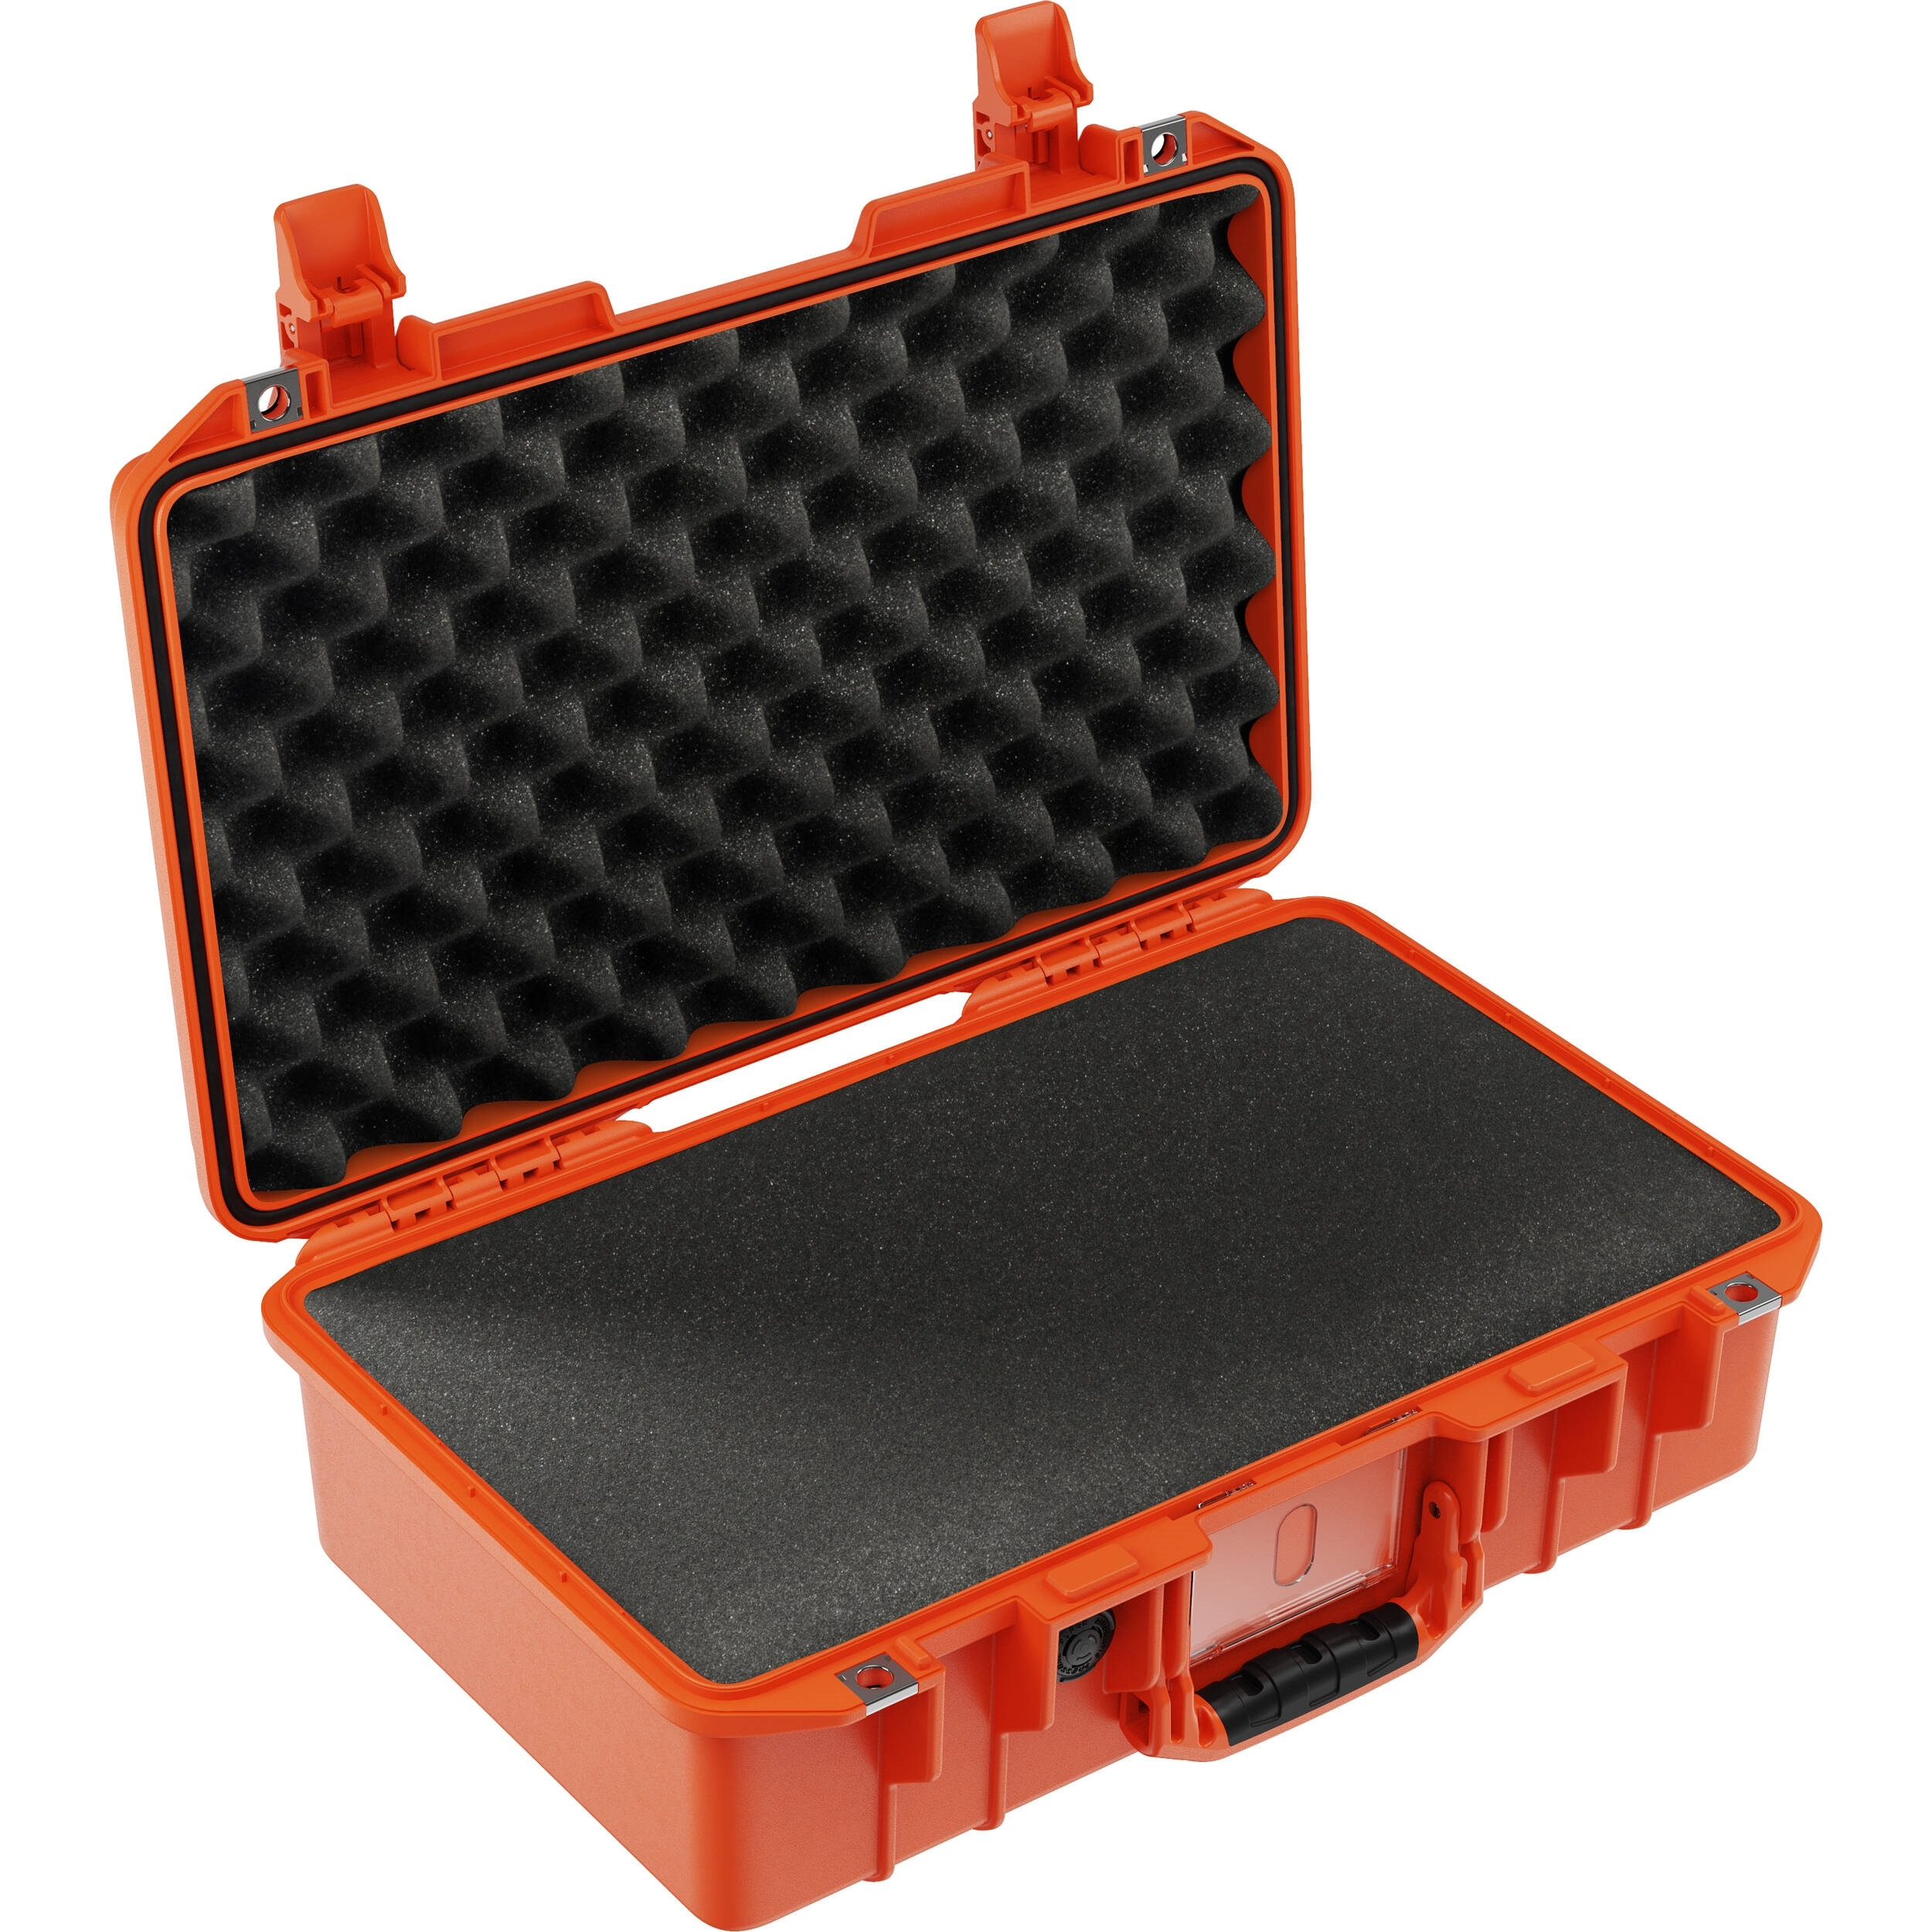 Pelican 1485Air Gen 2 Hard Carry Case with Foam Insert (Orange)